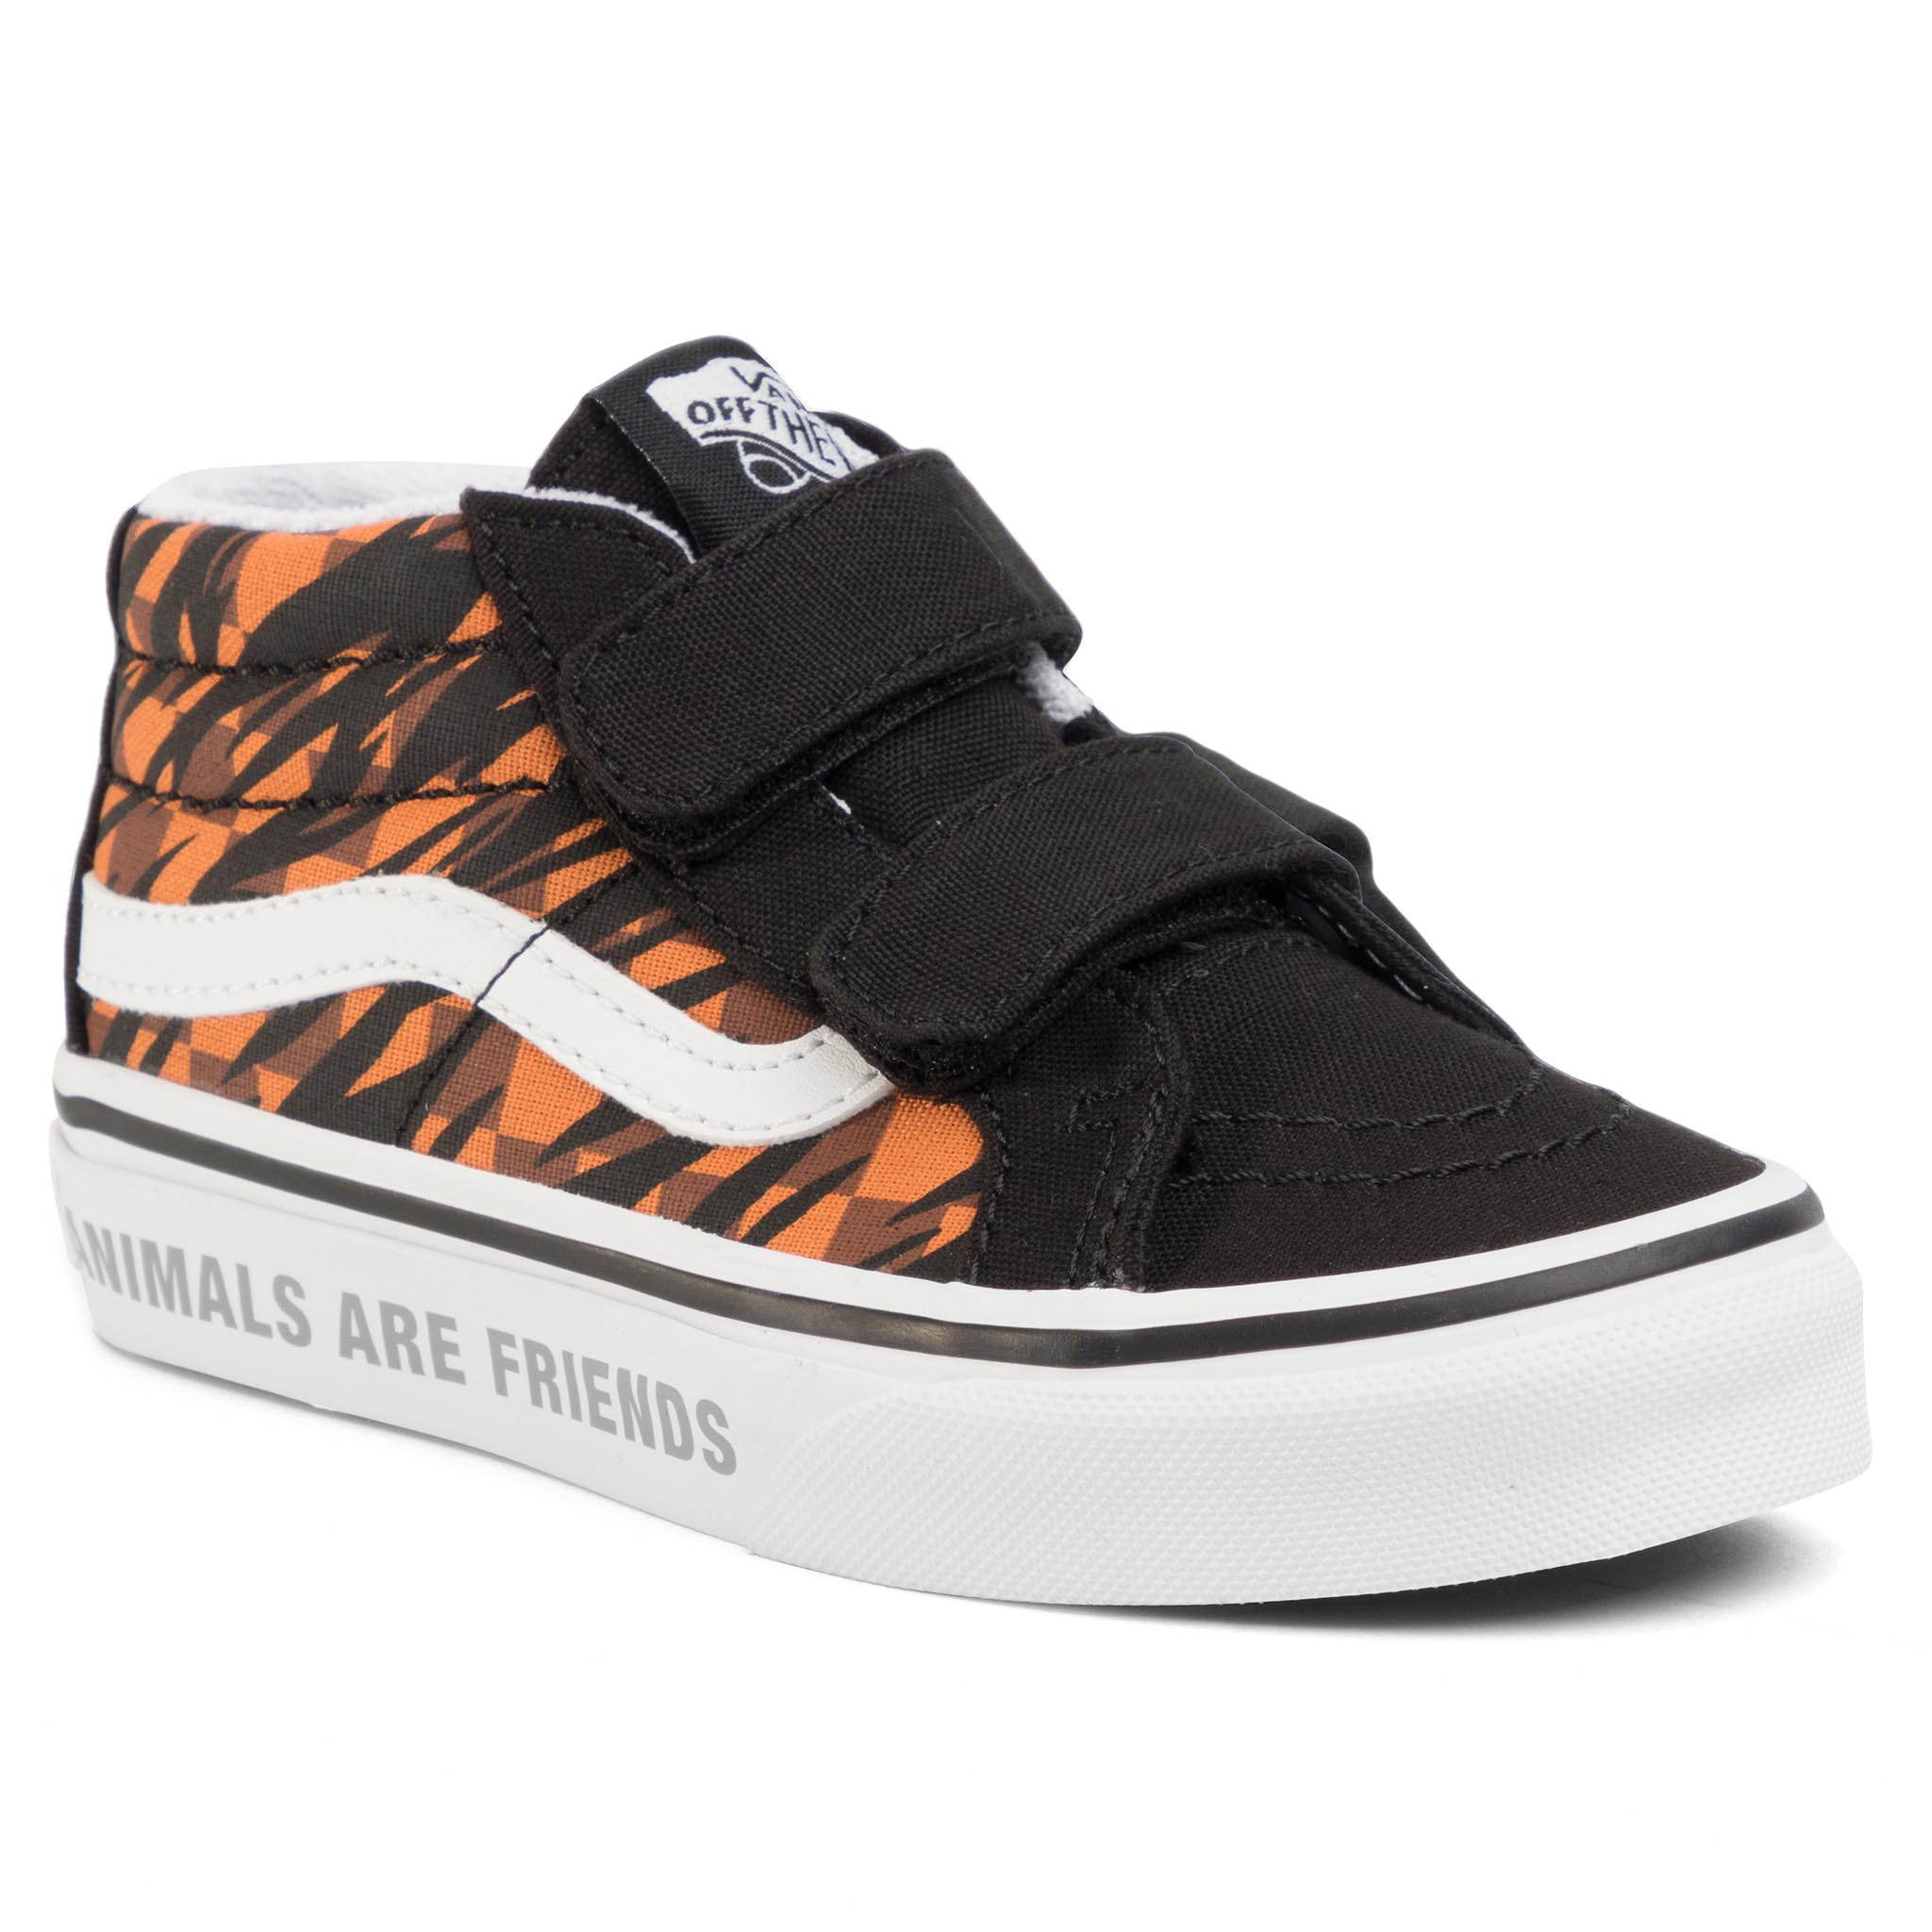 Sneakers VANS - Sk-8 Mid Reissue V VN0A38HHXWG1 (Animal Checkerbrd) Tgrblk